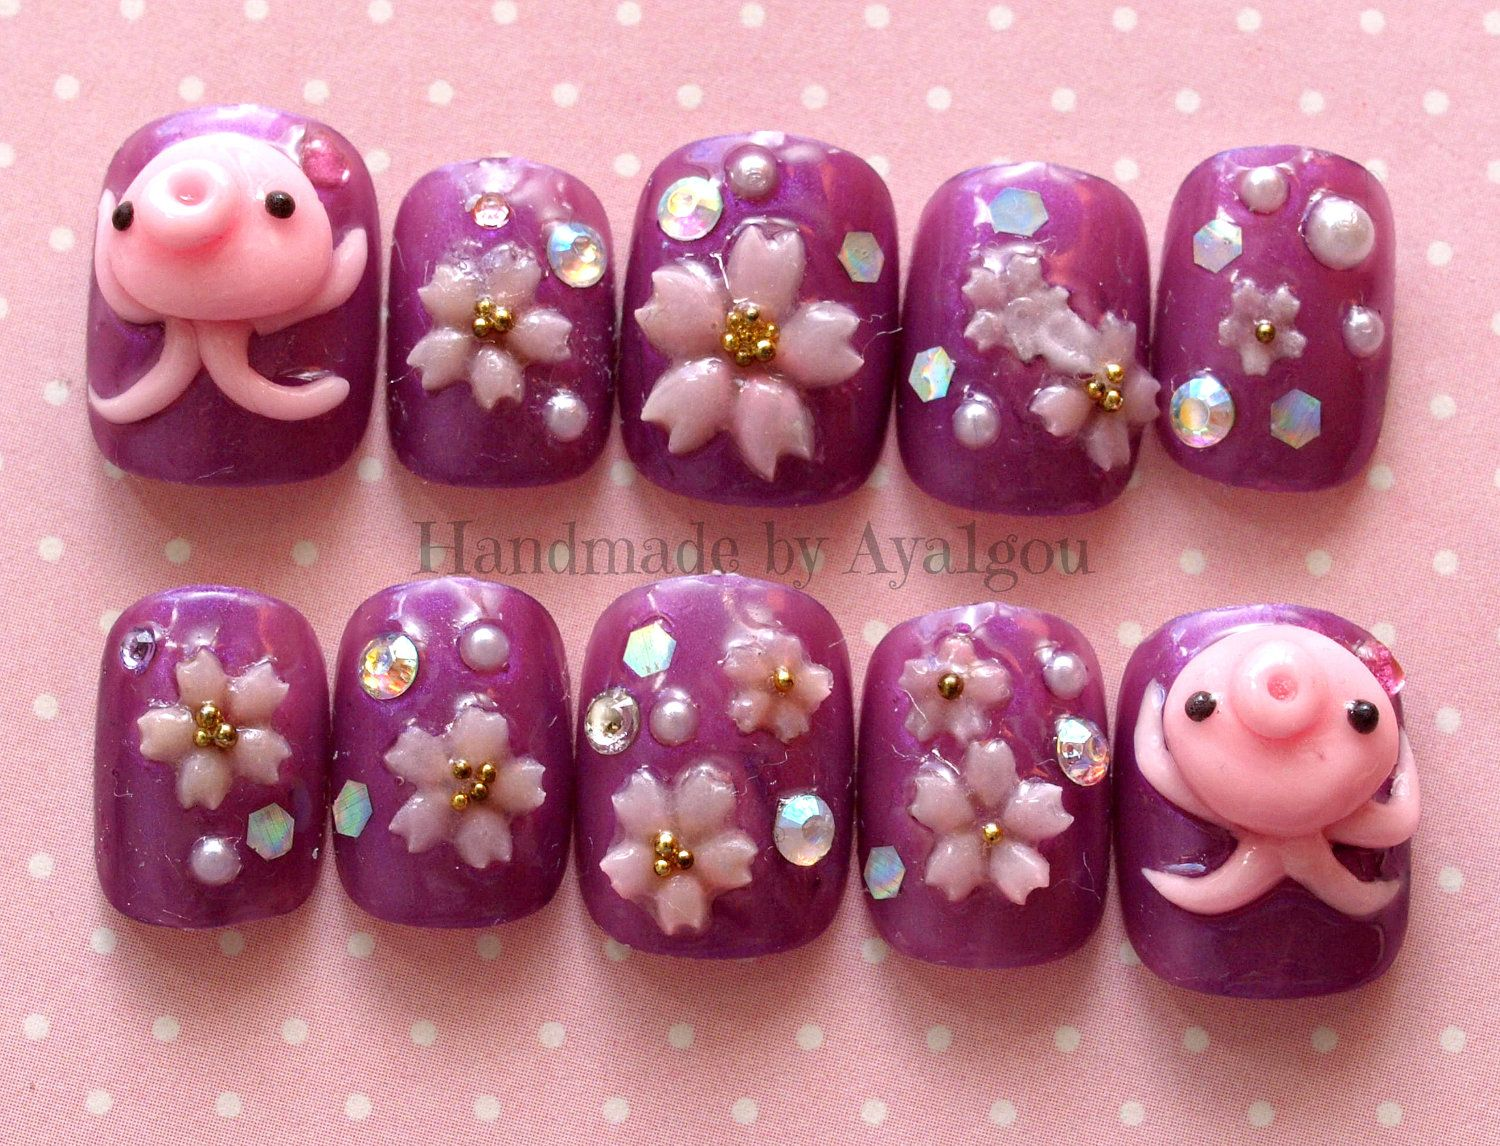 Adorable Japanese Nail Art Design With Cute 3D Octopus And Flowers ...